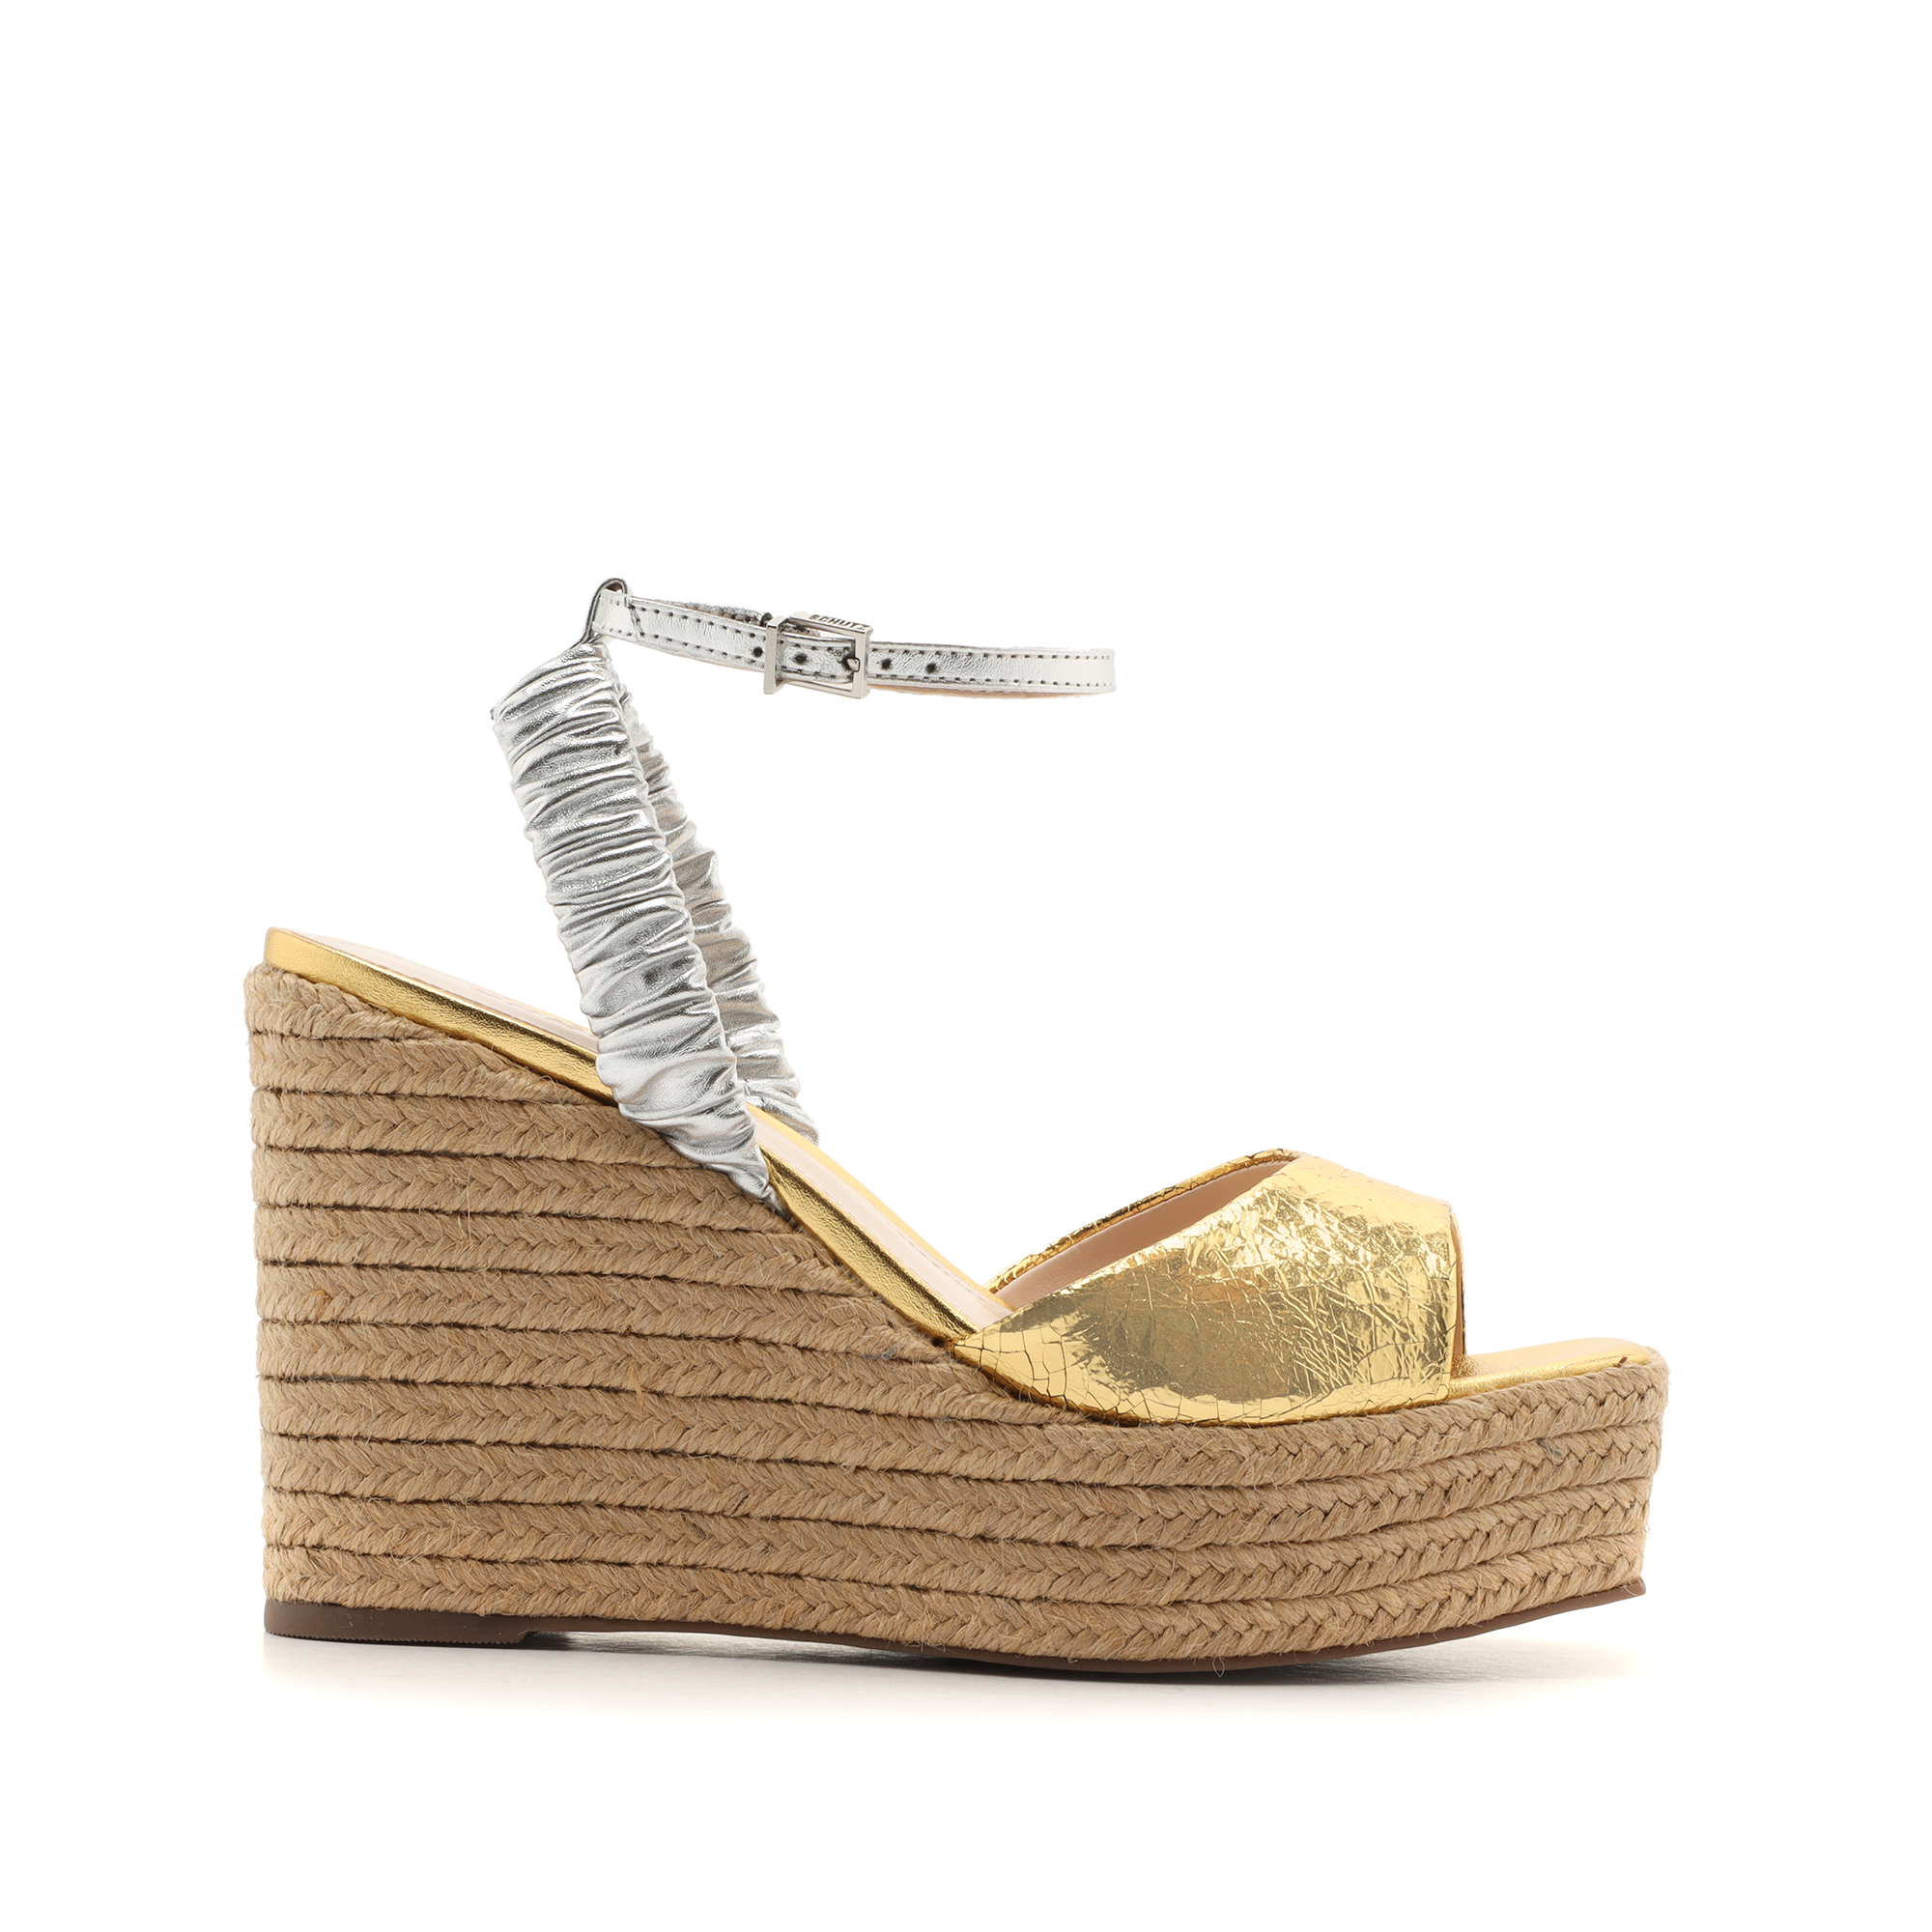 Outwest Wedge Sandal